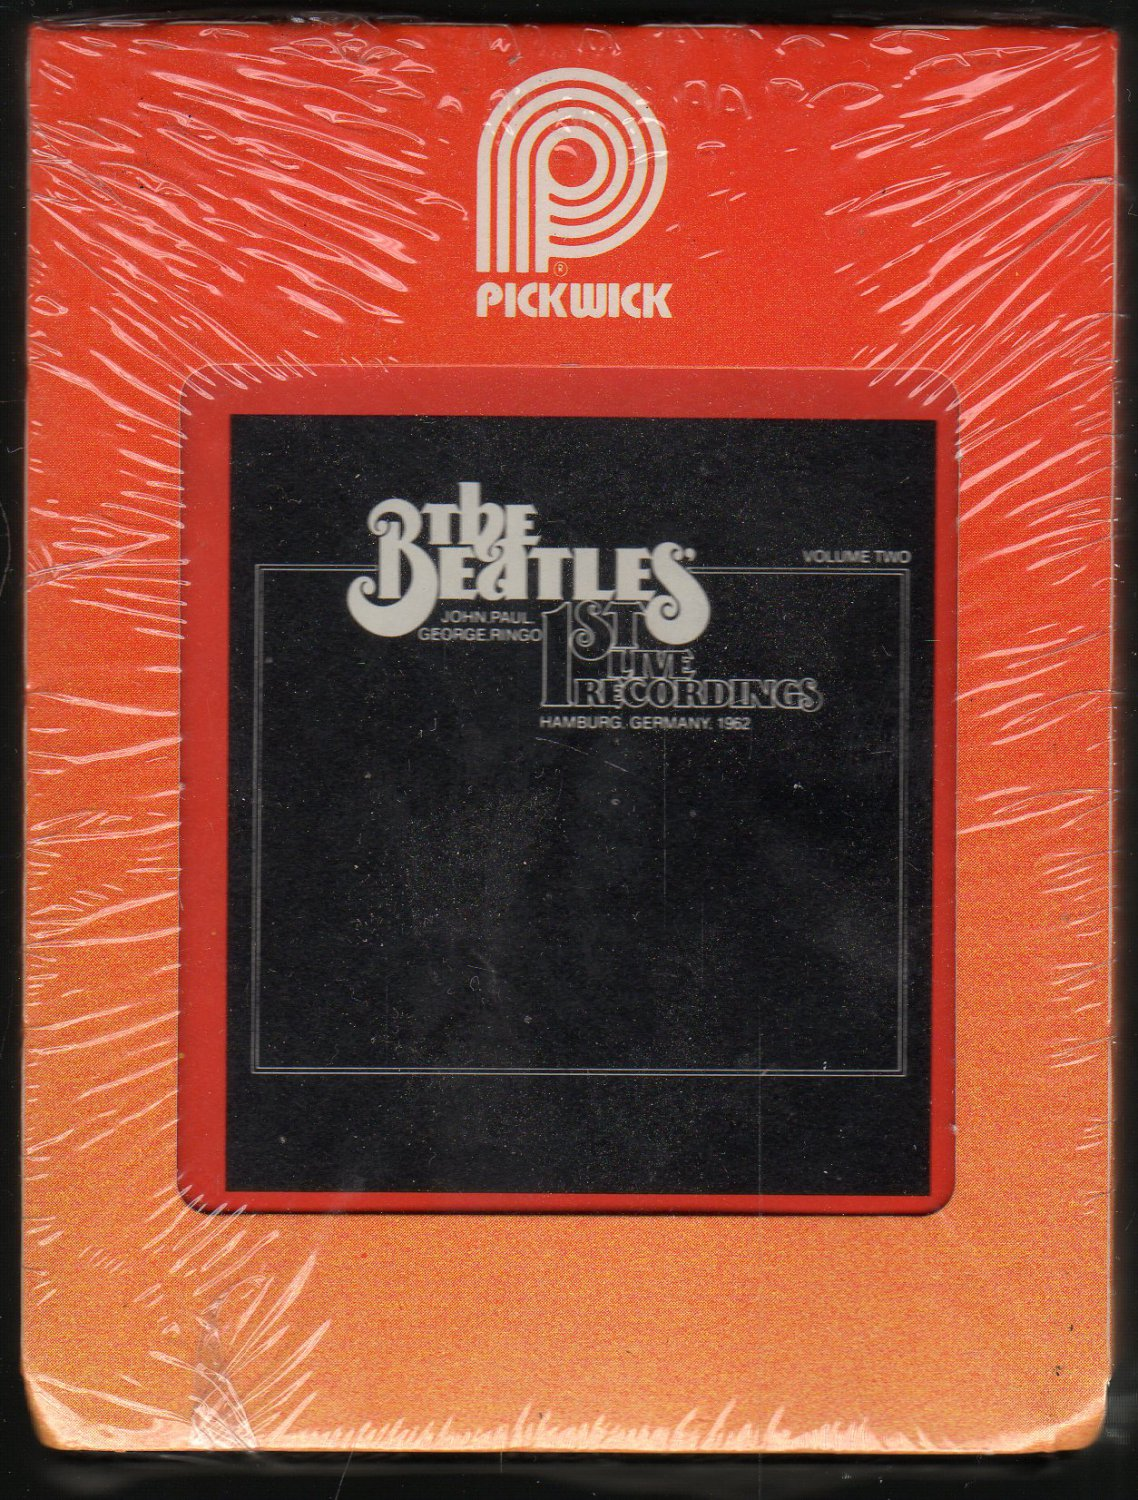 The Beatles - Live Vol 2 1st Live Recordings 1978 PICKWICK Sealed A18D 8-TRACK TAPE